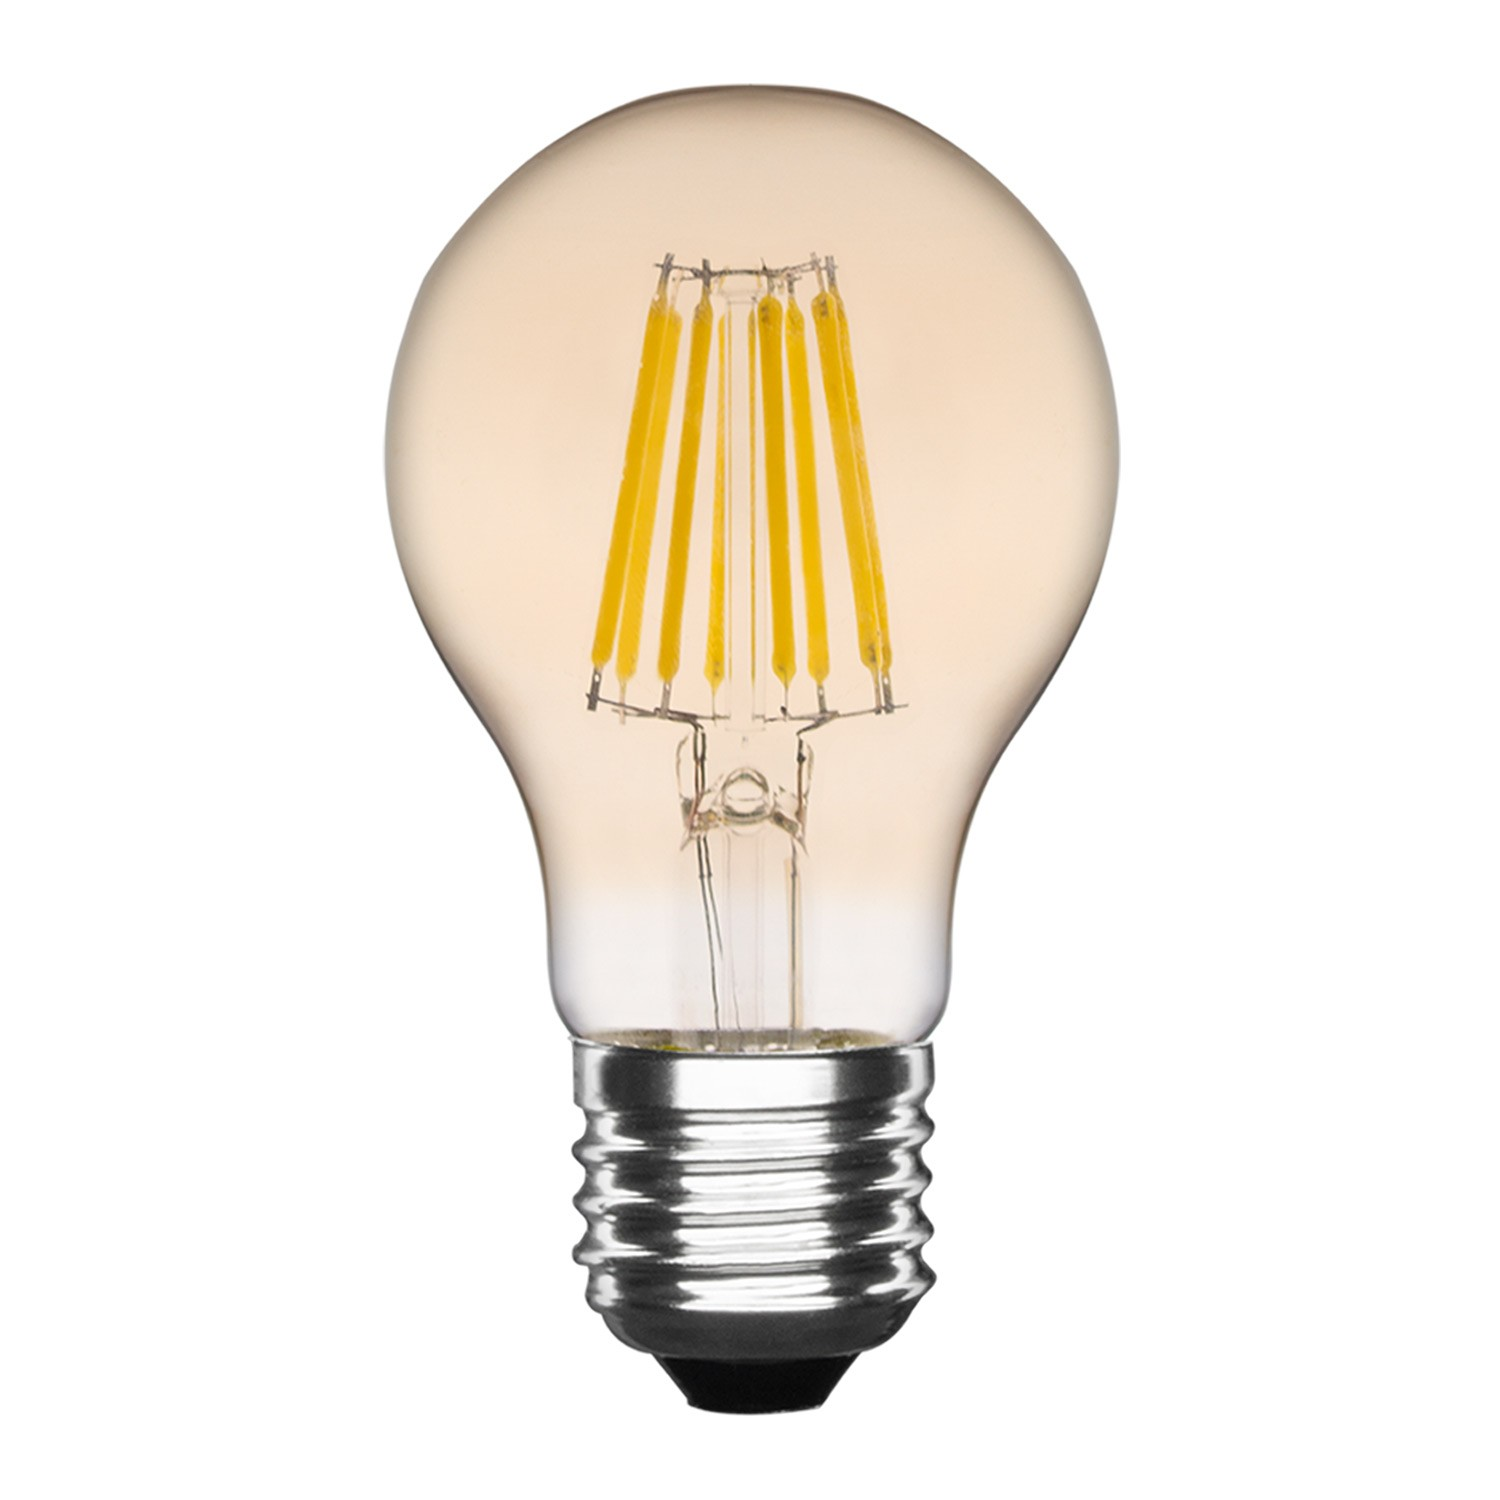 Gradient Stand Bulb, gallery image 1